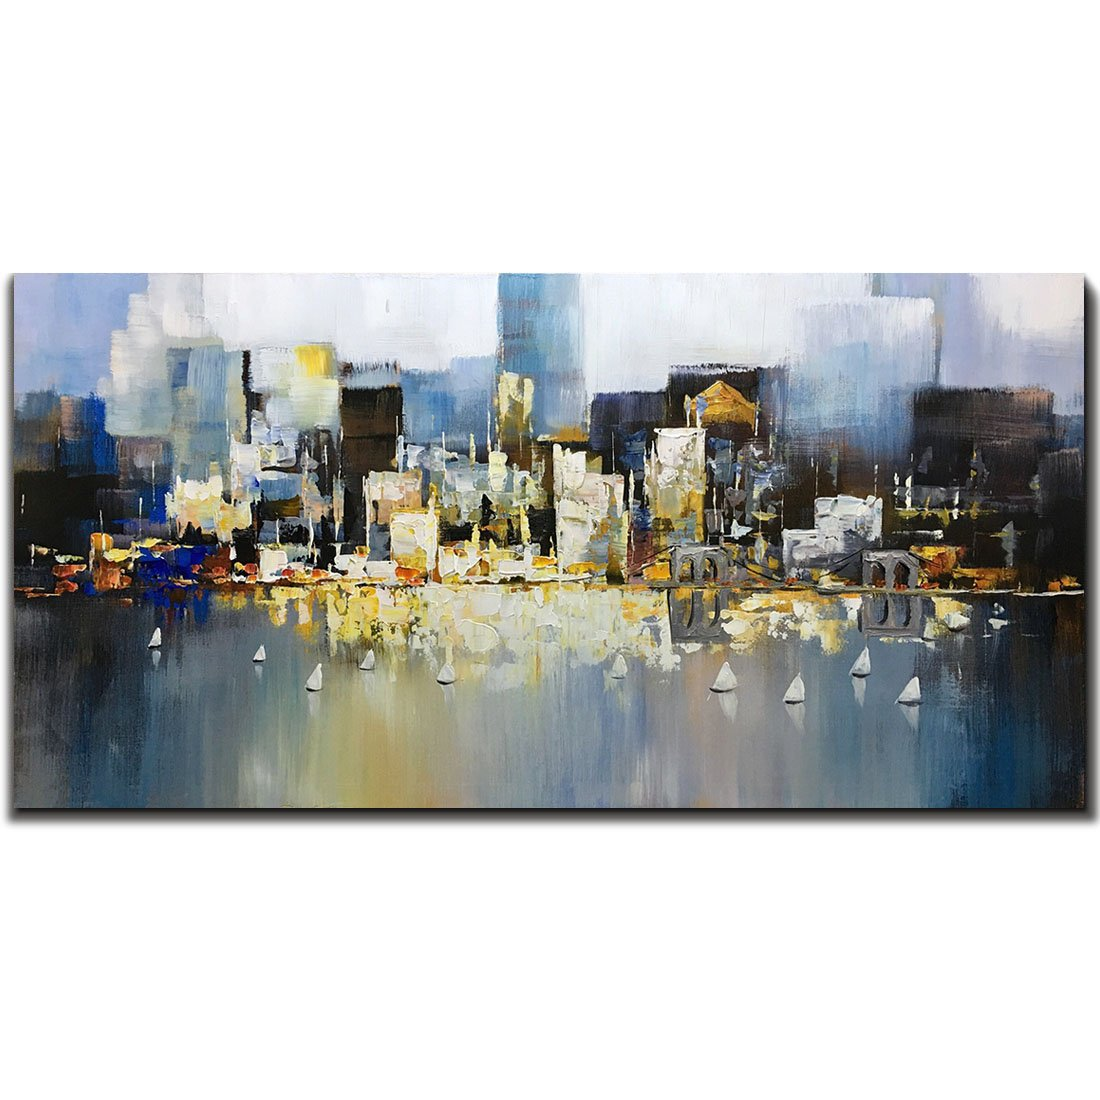 Metuu Modern Canvas Paintings, City Lights Up - Texture Palette Knife Paintings Modern Home Decor Wall Art Painting Wood Inside Framed Ready to hang 24x48inch